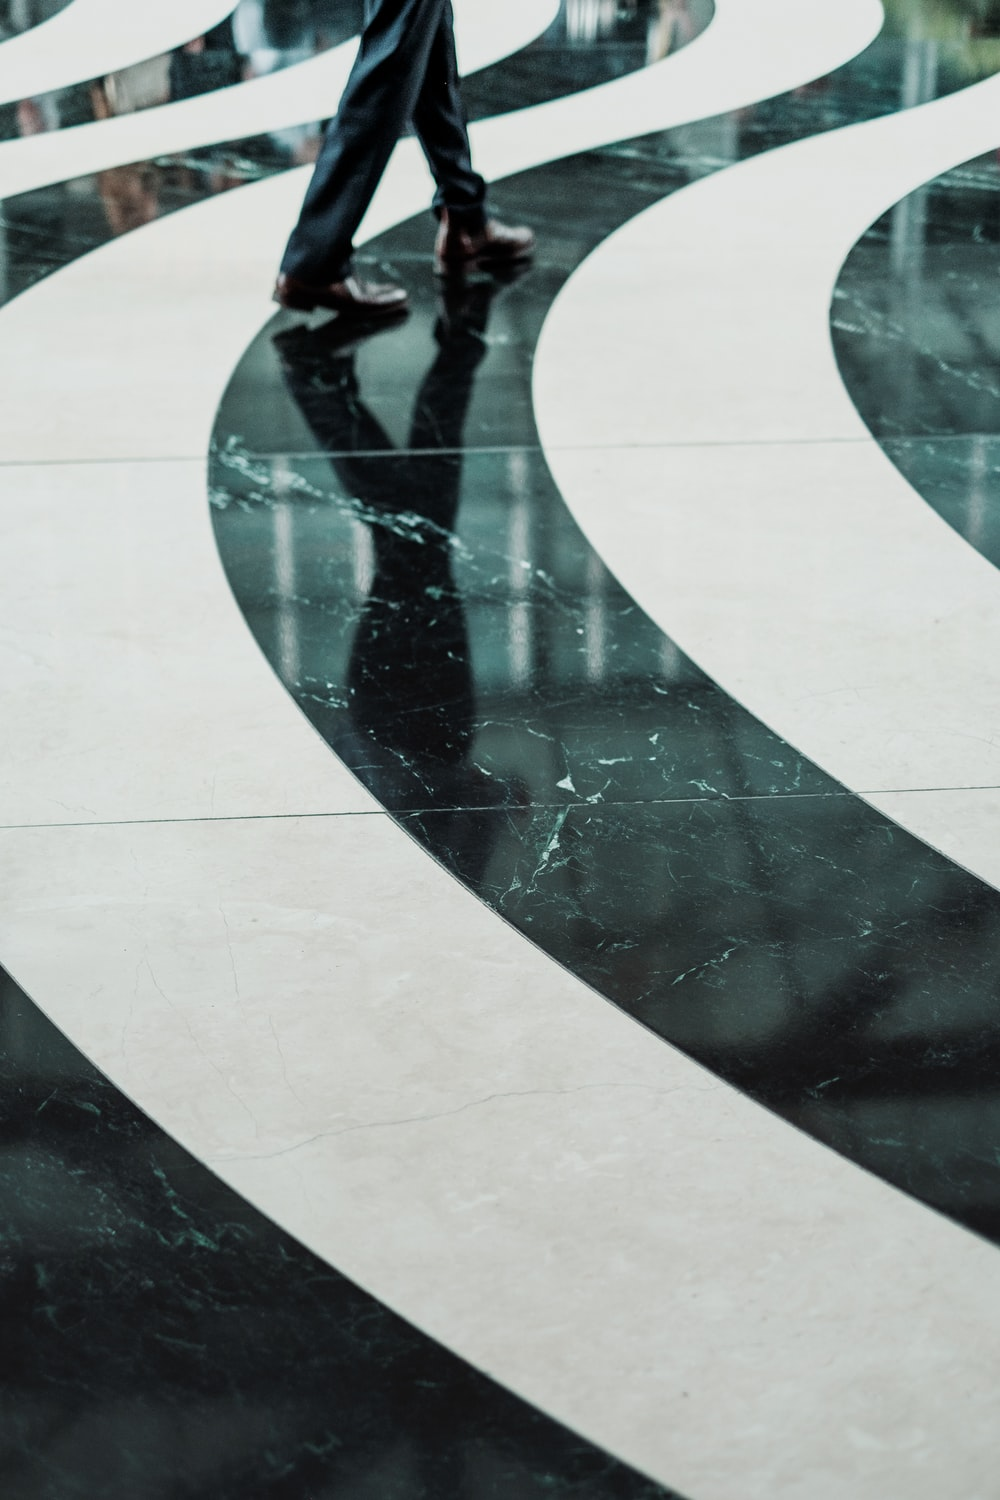 Swirling black and white pattern on a marble floor